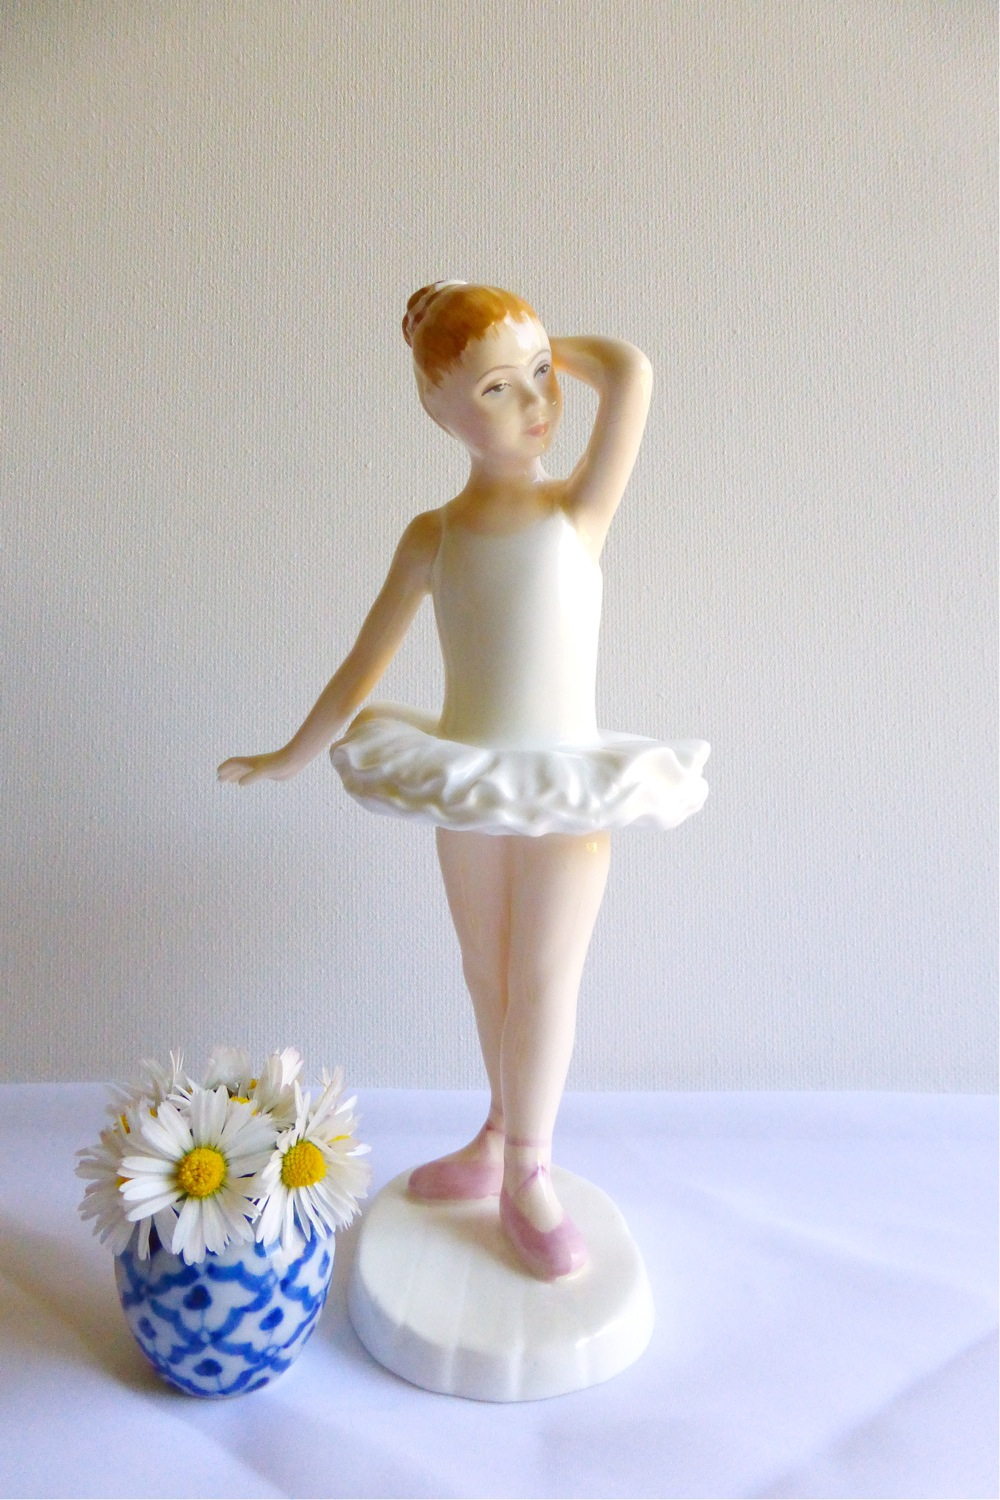 Royal Doulton HN3395 Little Ballerina, Royal Doulton bone china figurine, Vintage Tea Treasures on Etsy, Etsy shop Vintage Tea Treasures, vintage tea ware, vintage gifts, English bone china, vintage English tea ware, Etsy shop update